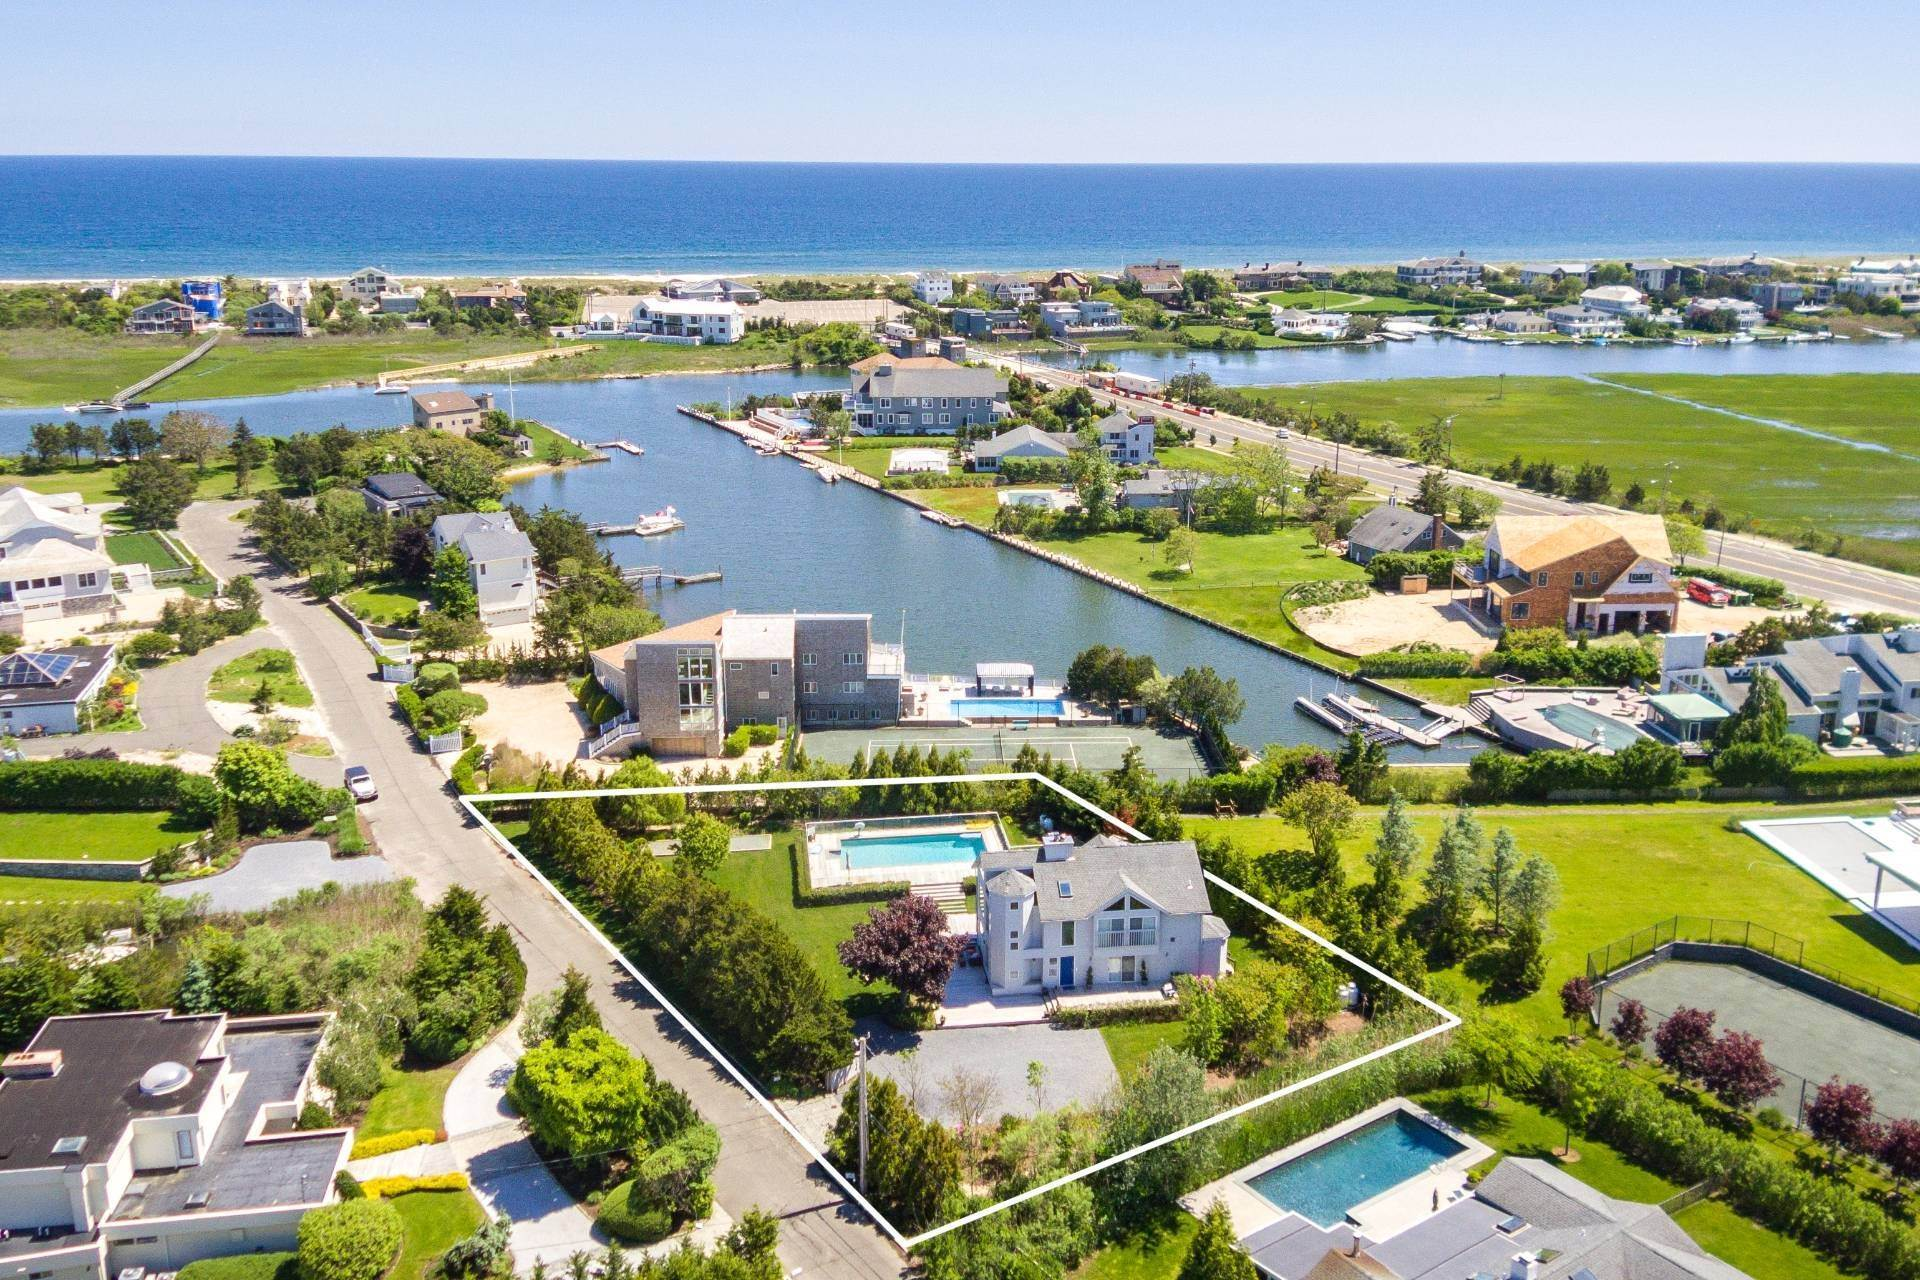 Single Family Homes for Sale at An Investment To Live In Westhampton Beach Village, Southampton Town, NY 11978